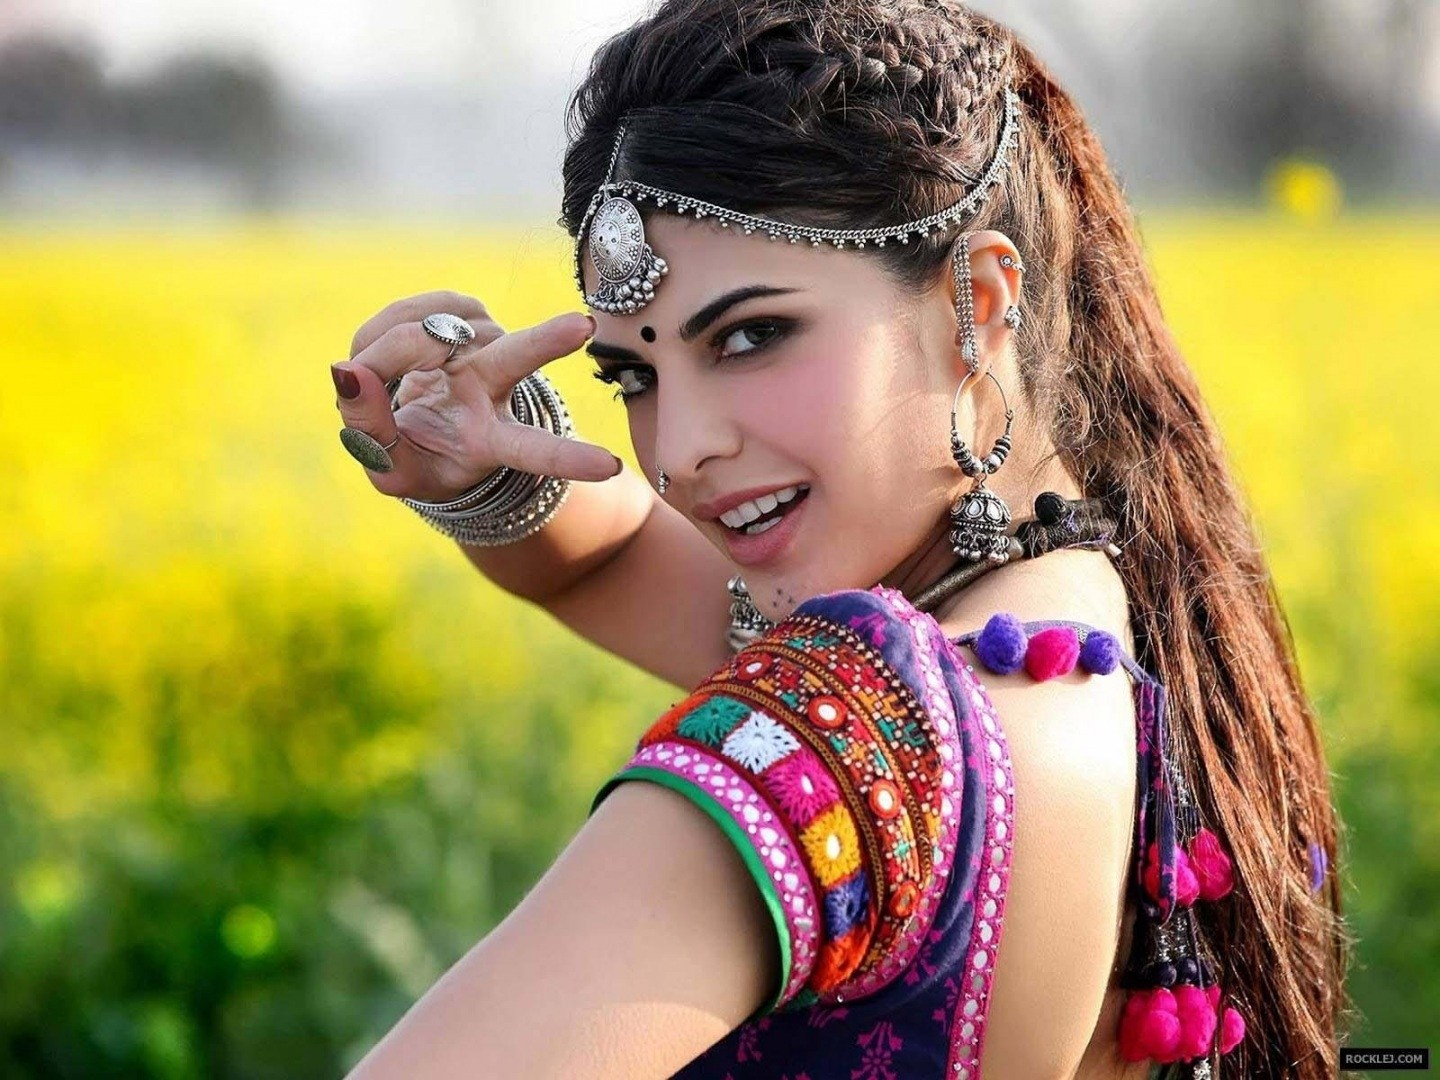 Beautiful Punjabi Girls Wallpapers And Pictures One Jacklin Photos Hd Download 1440x1080 Download Hd Wallpaper Wallpapertip